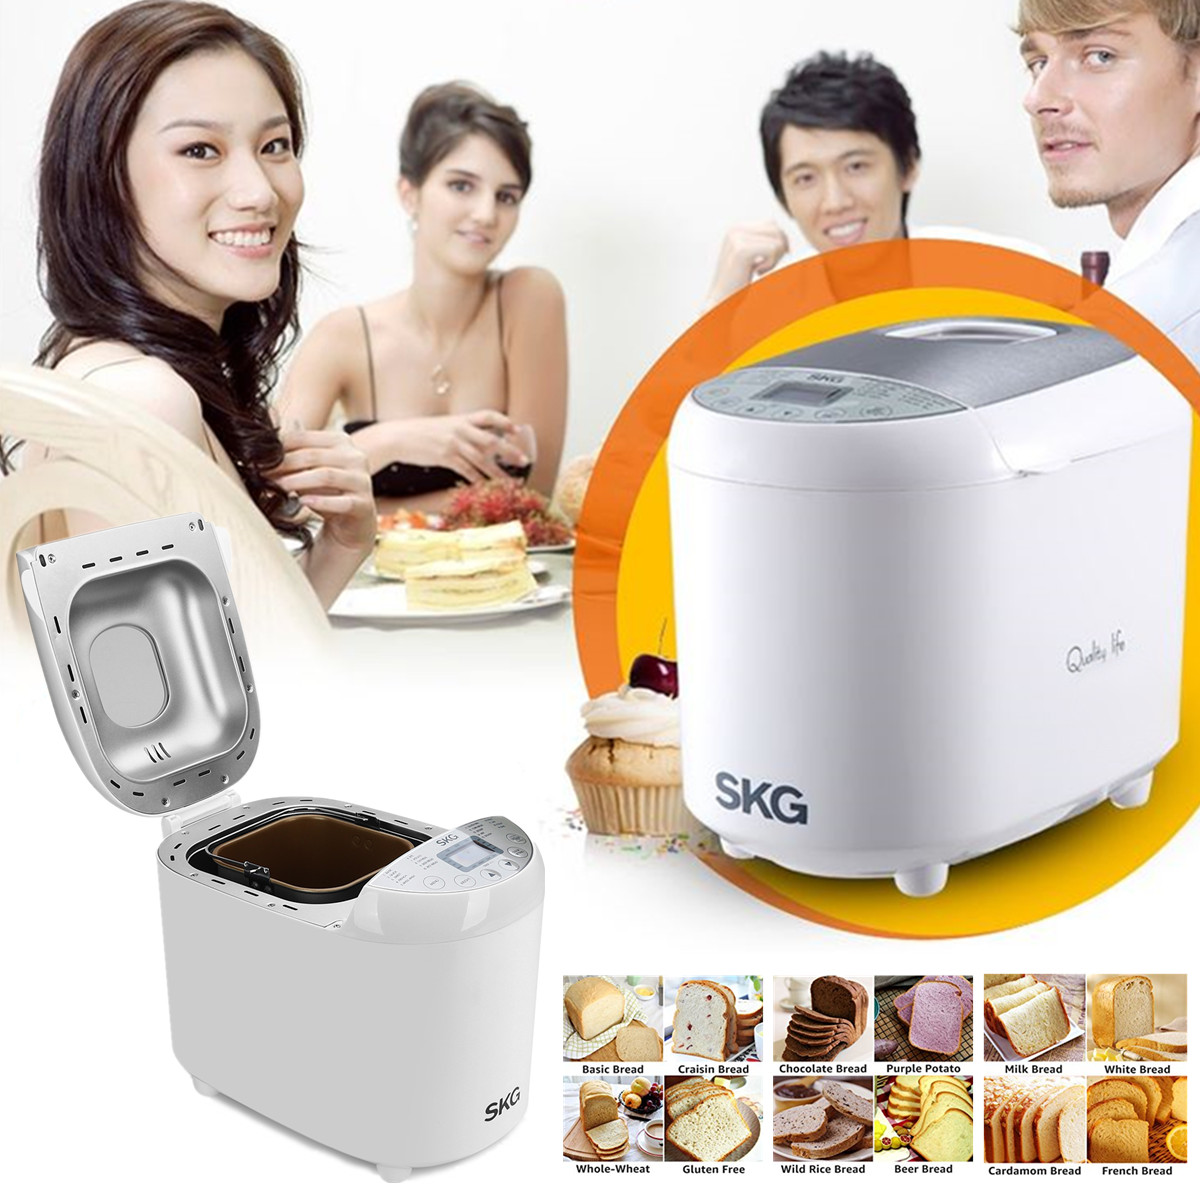 SKG Automatic Bread Machine Nonstick Coated 2LB Beginner Friendly Programmable Bread Maker